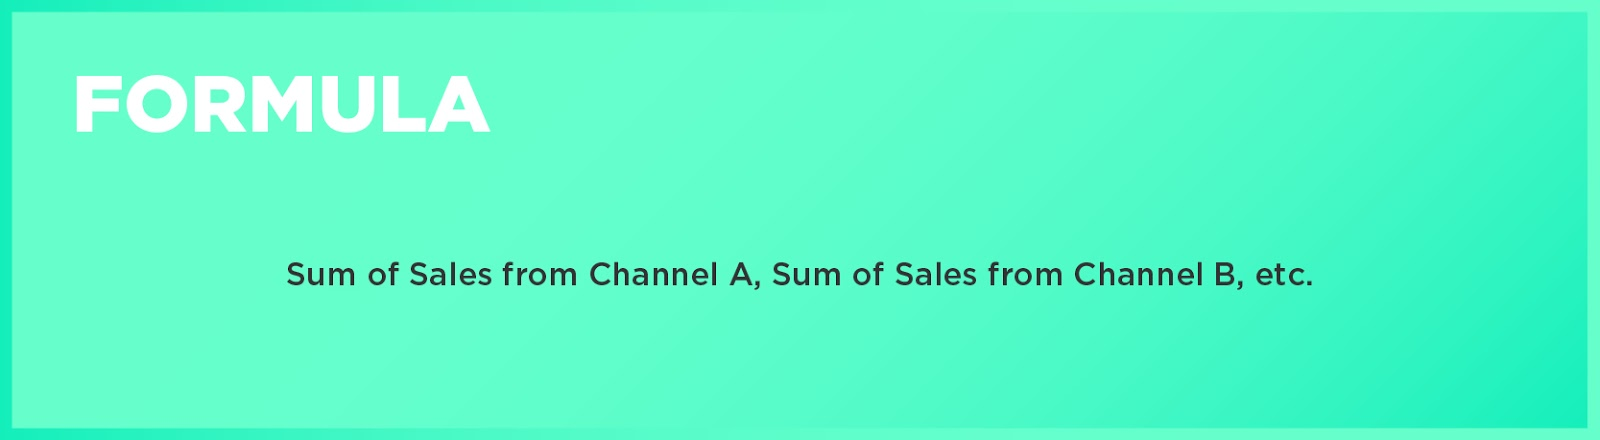 Formula: Sum of Sales from Channel A, Sum of Sales from Channel B, etc.